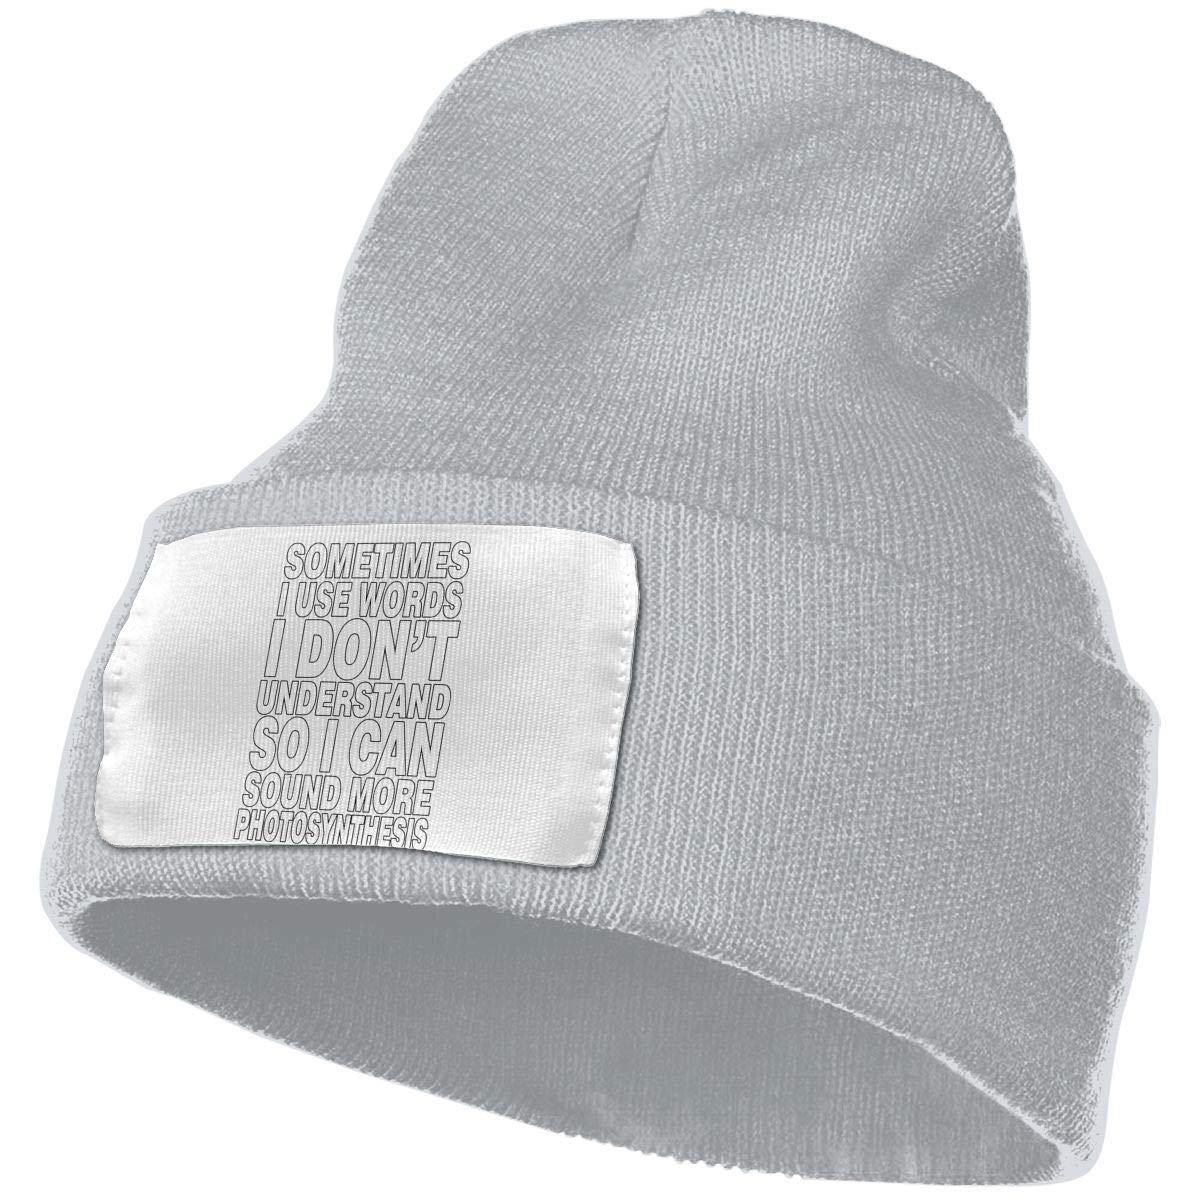 TAOMAP89 Sometimes I Use Words I Dont Understand Women and Men Skull Caps Winter Warm Stretchy Knitting Beanie Hats